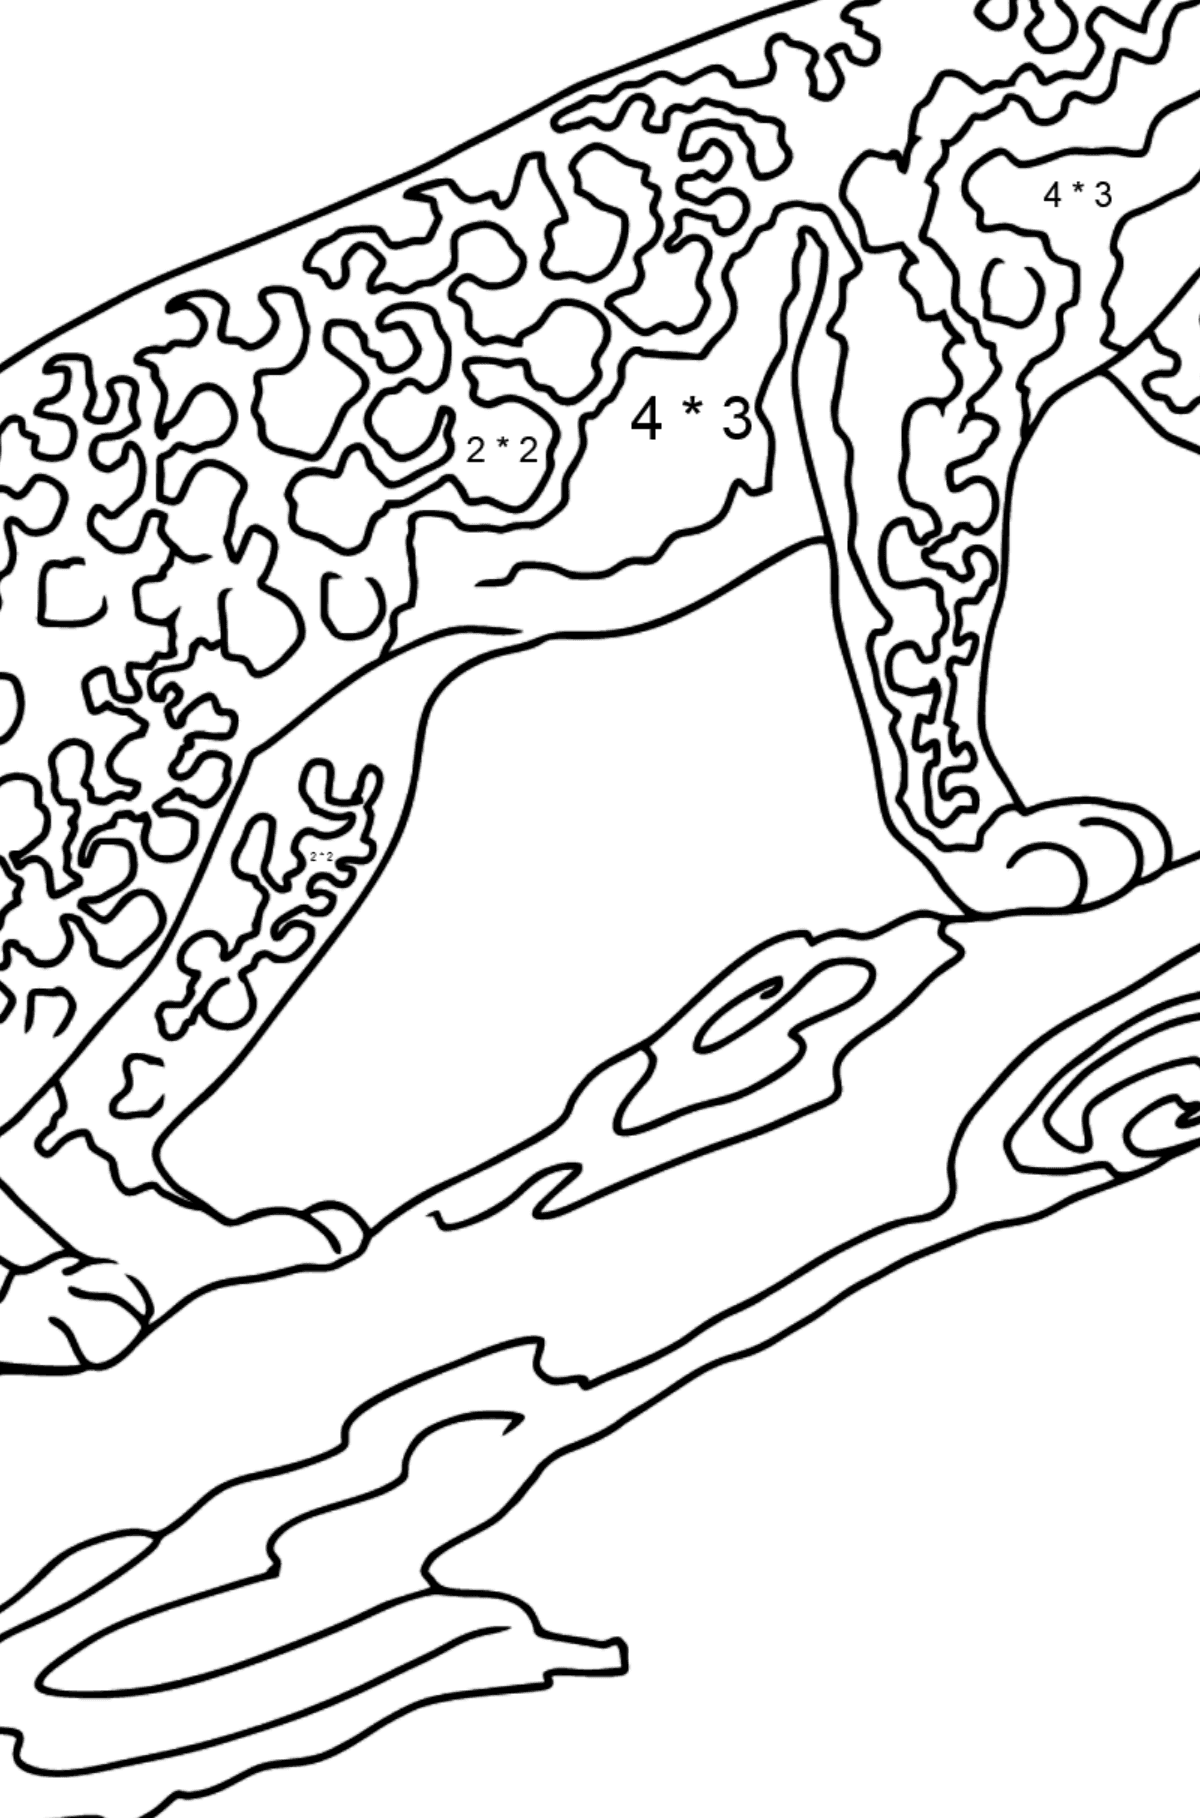 Coloring Page - A Leopard is Getting Ready for a Jump - Math Coloring - Multiplication for Kids